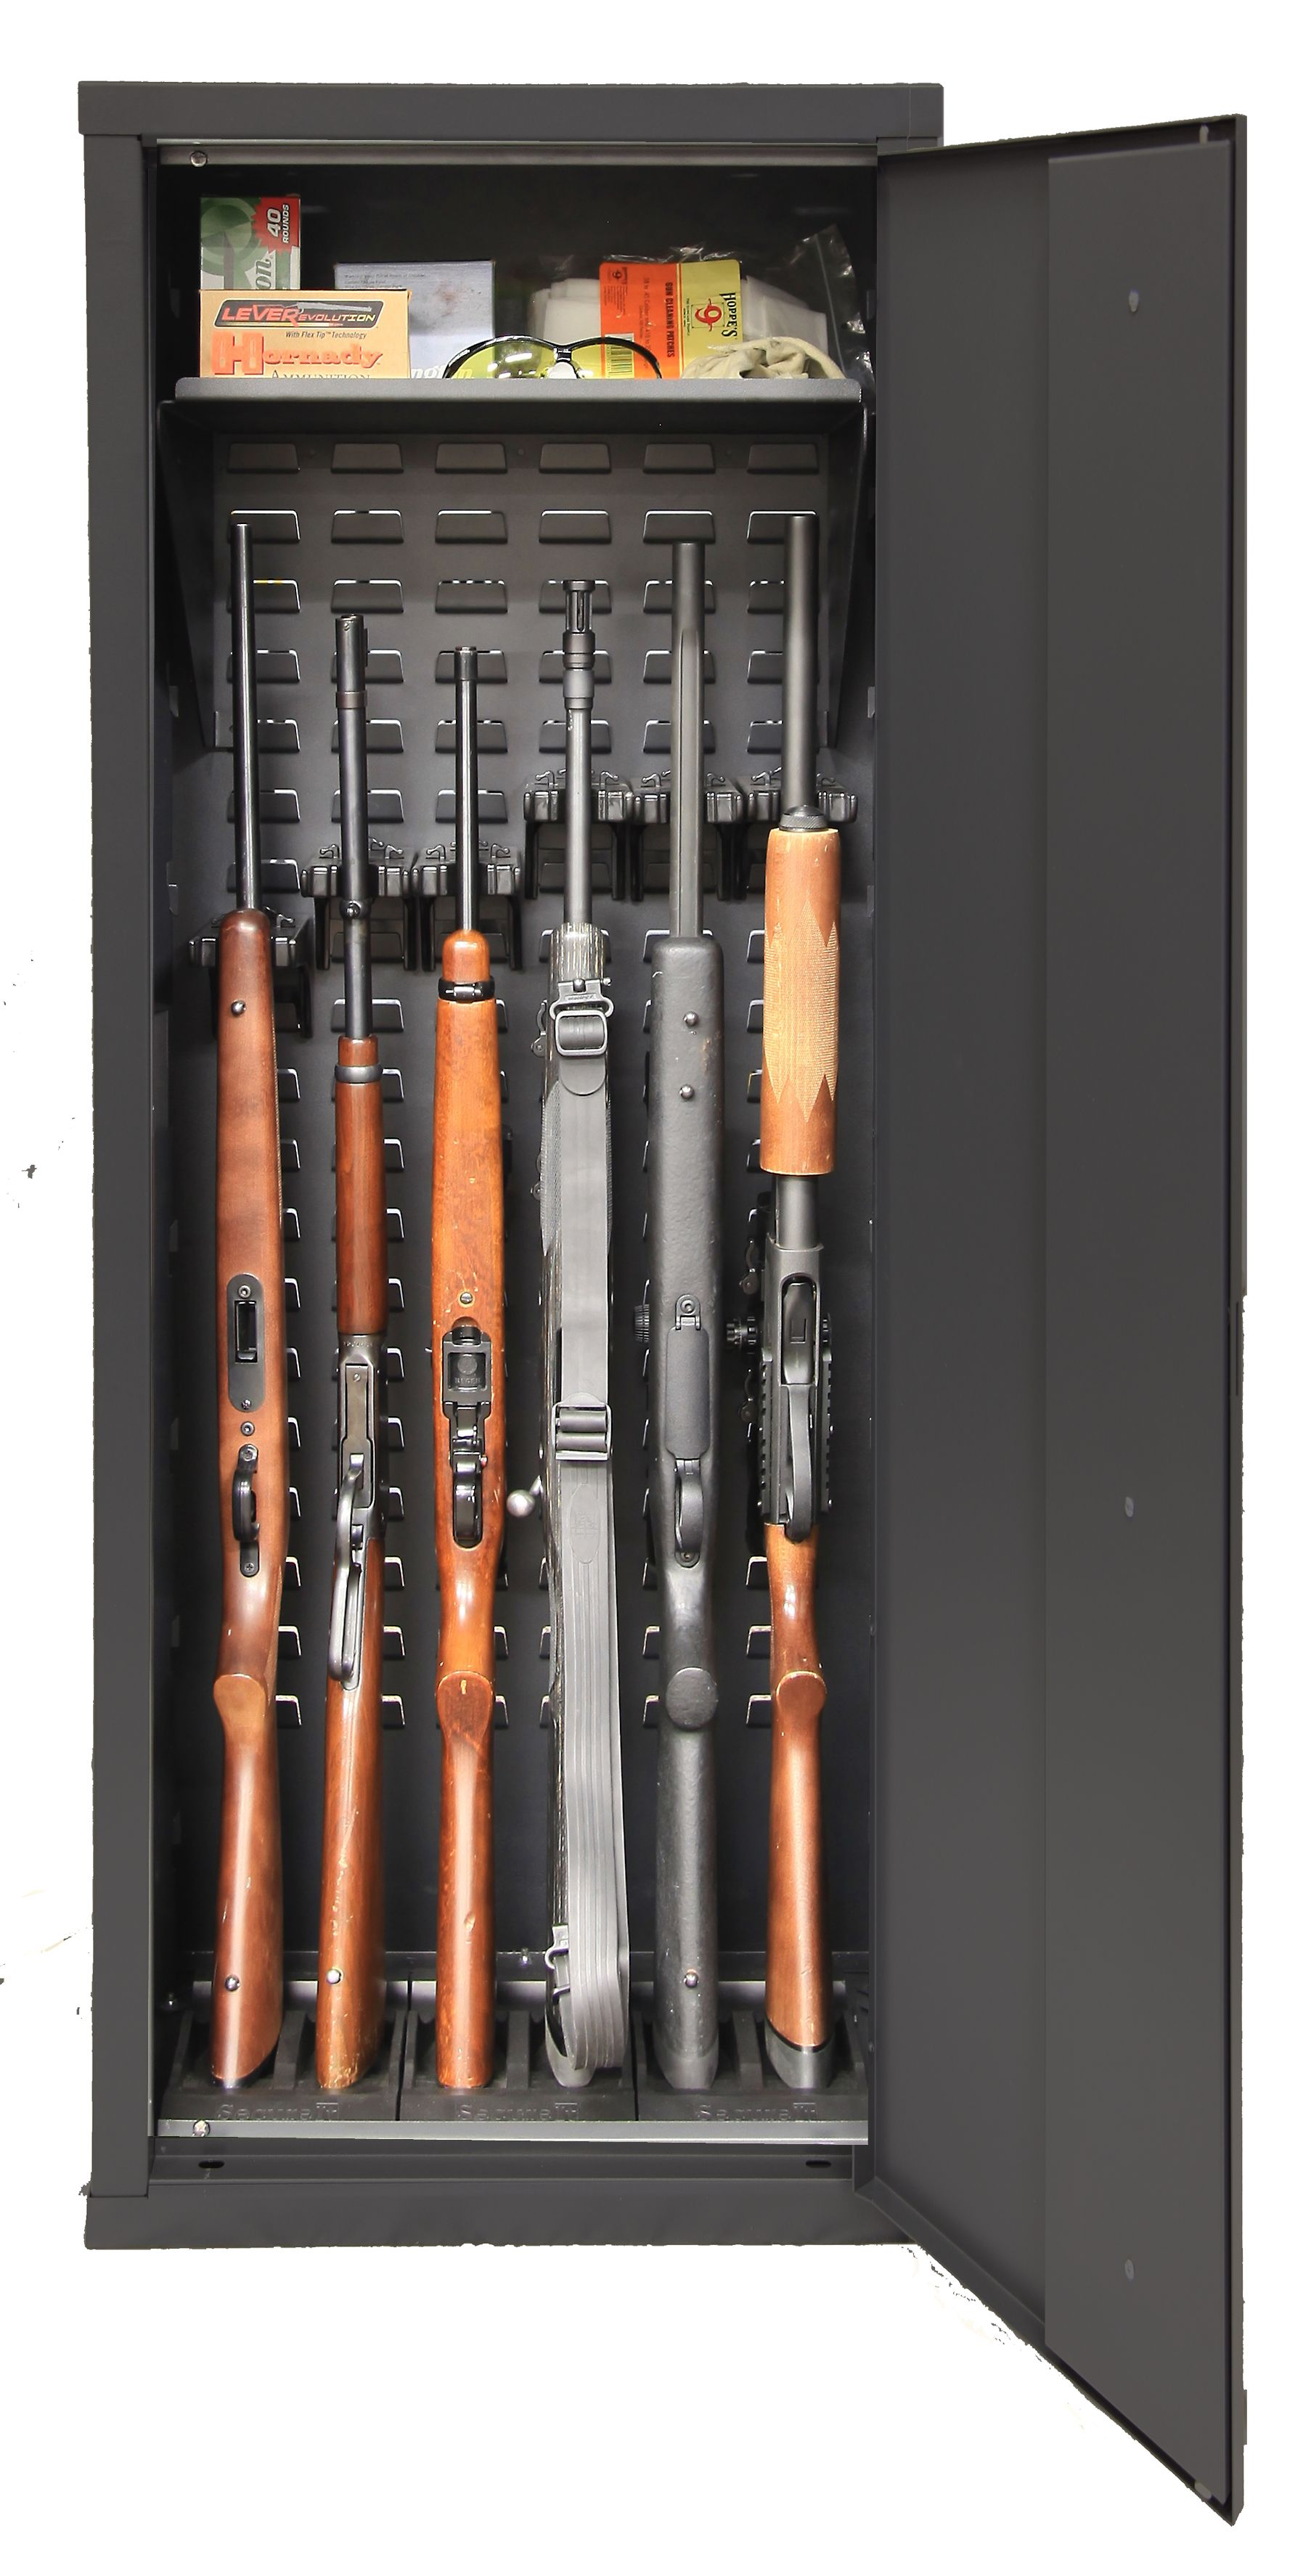 The SecureIt Model 52 Gun Cabinet can hold up to 6 firearms and is